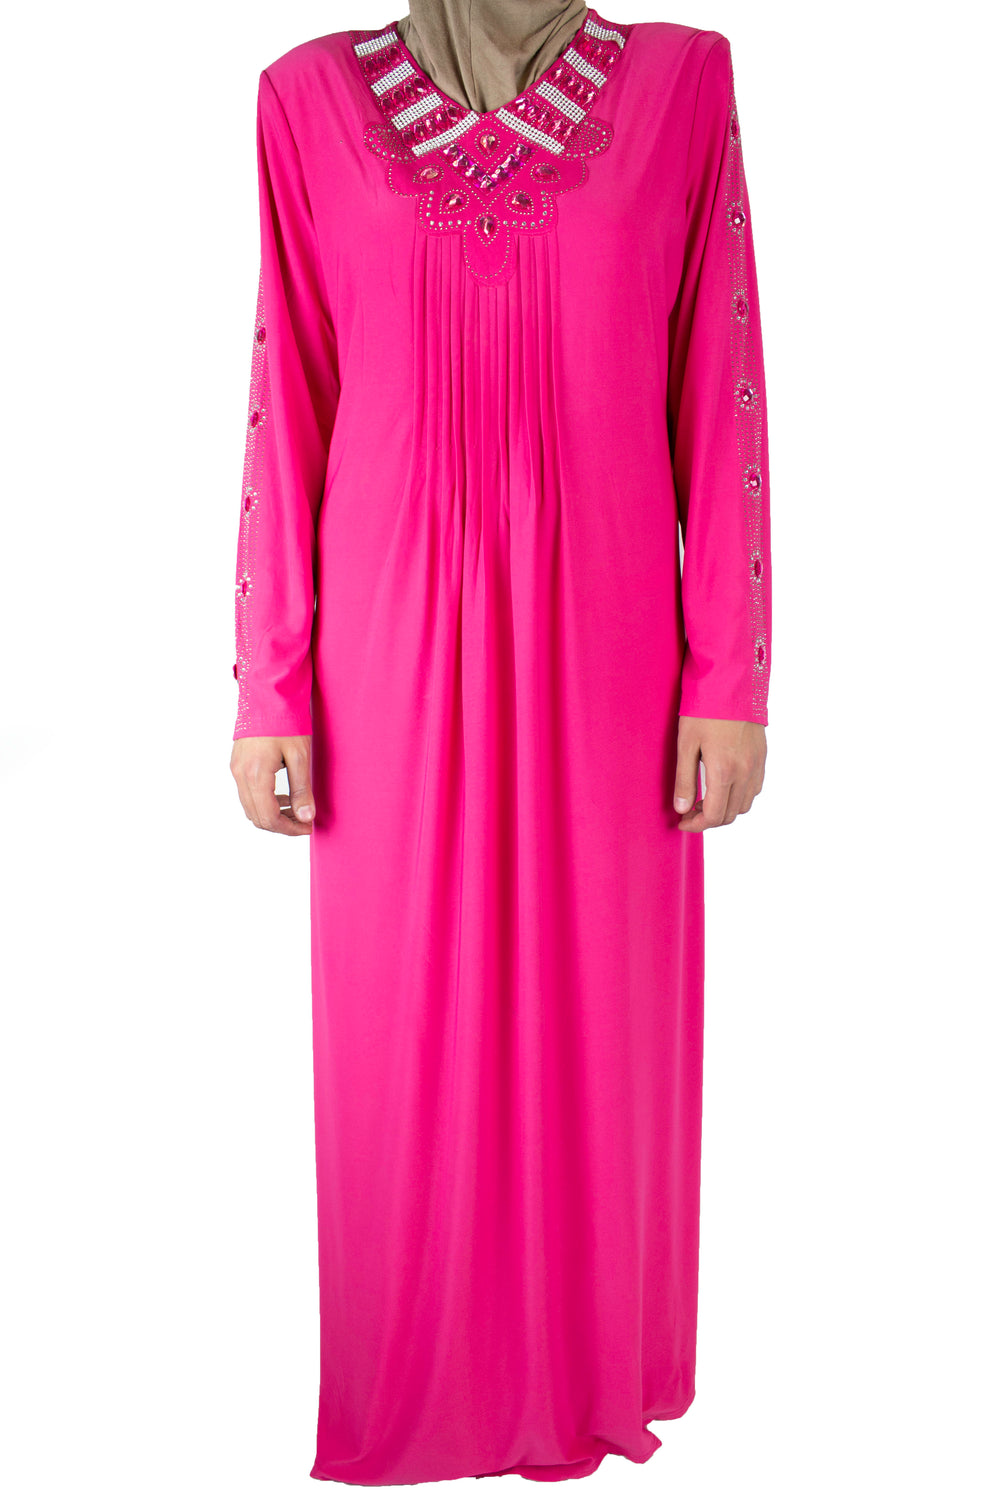 pink abaya with pleats on the chest and jewels along the neckline and arms